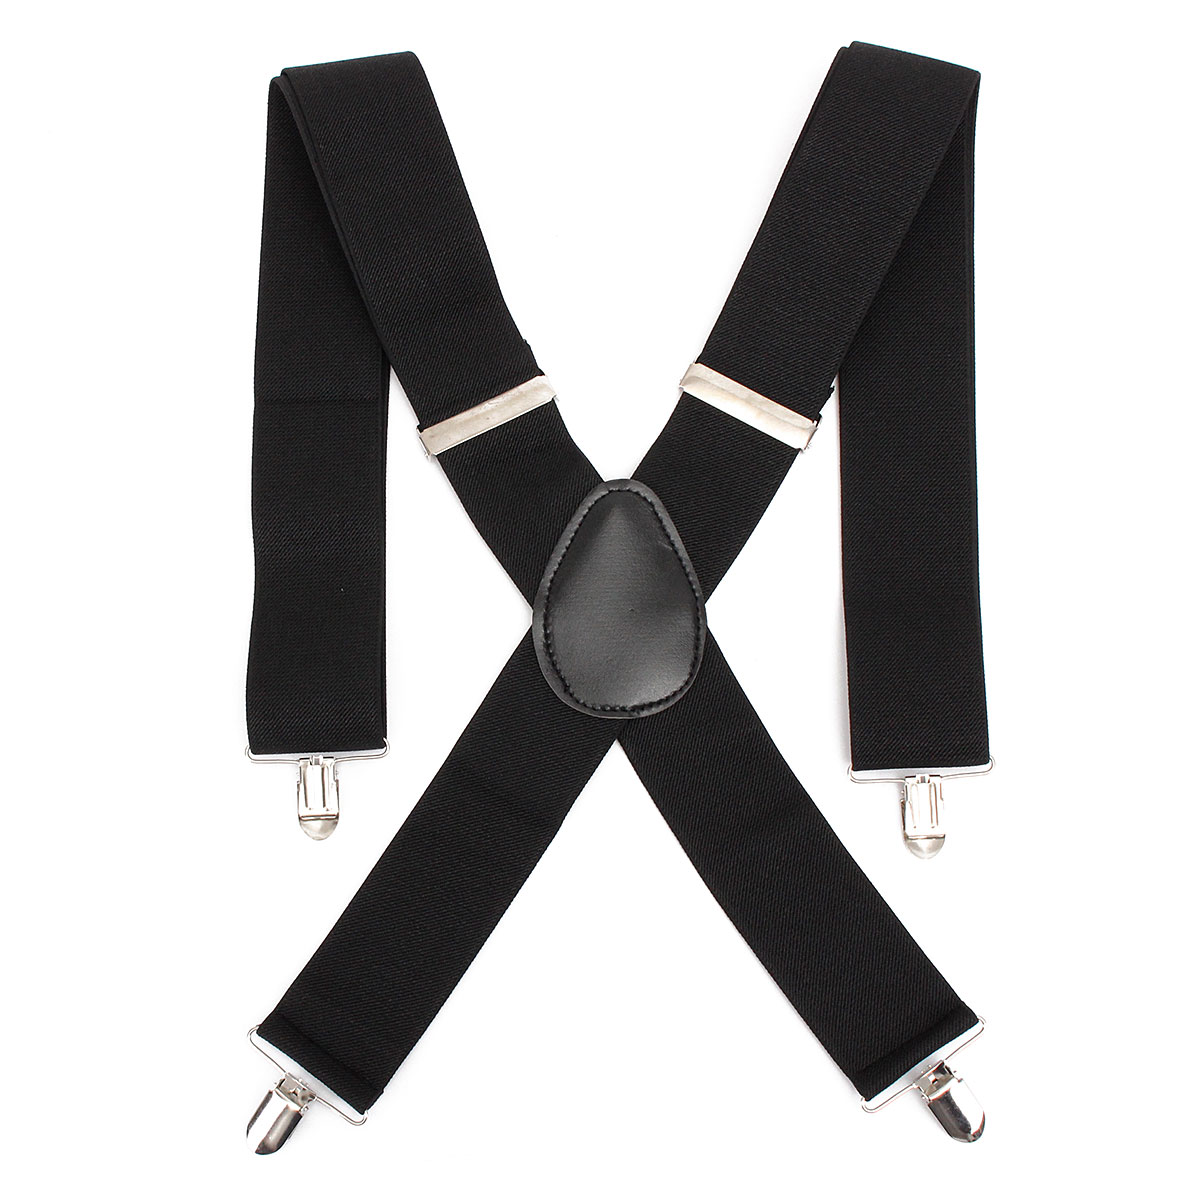 Adjustable Elastic Nylon Leather Men Suspender Straps X Shape Clip-on Men's Suspenders 4 Clip Pants Braces For Male Belt Straps